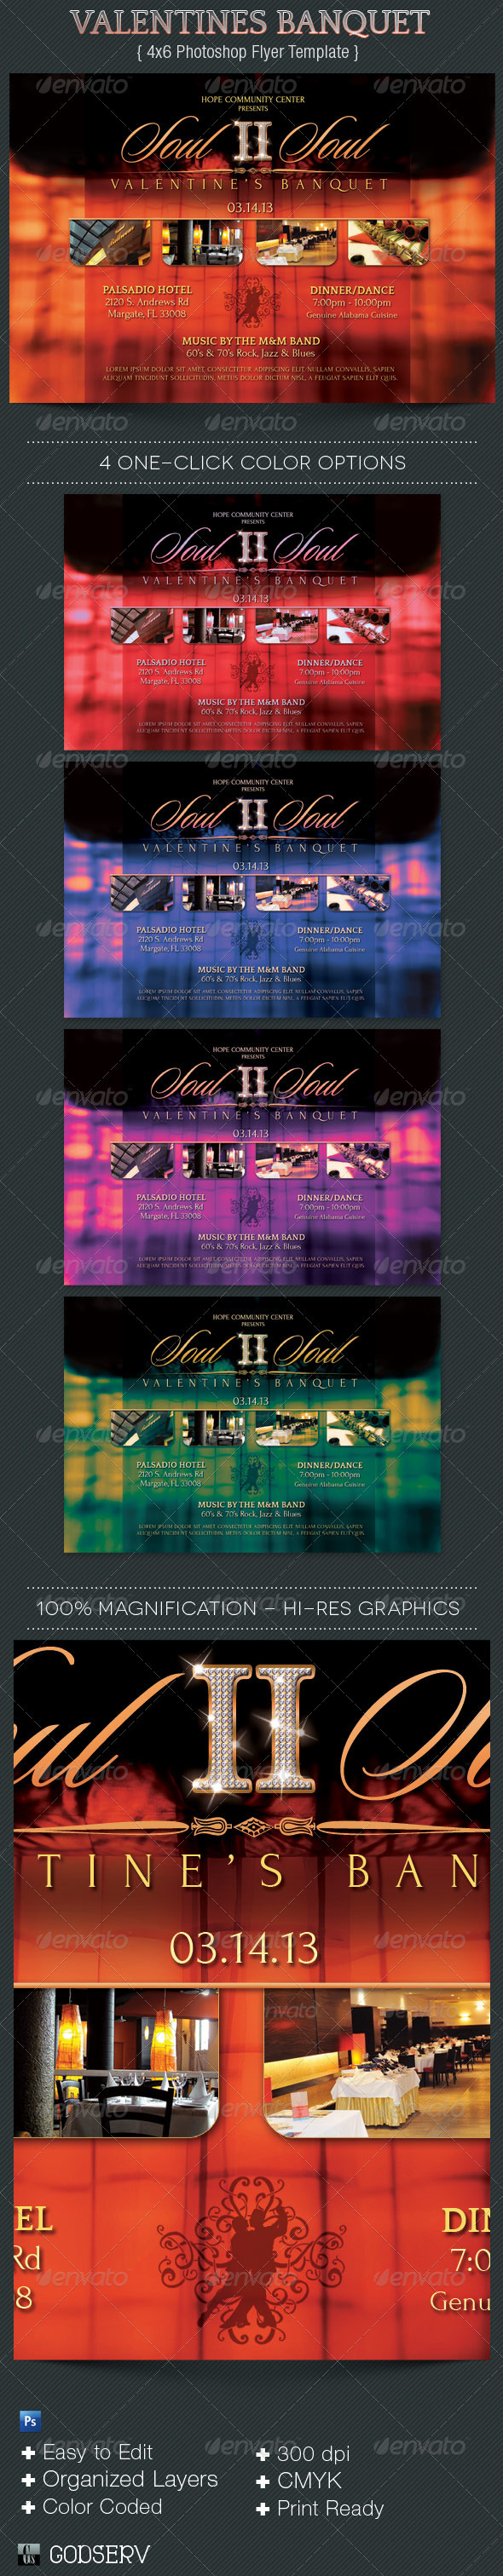 Valentines Banquet Flyer Template - Holidays Events